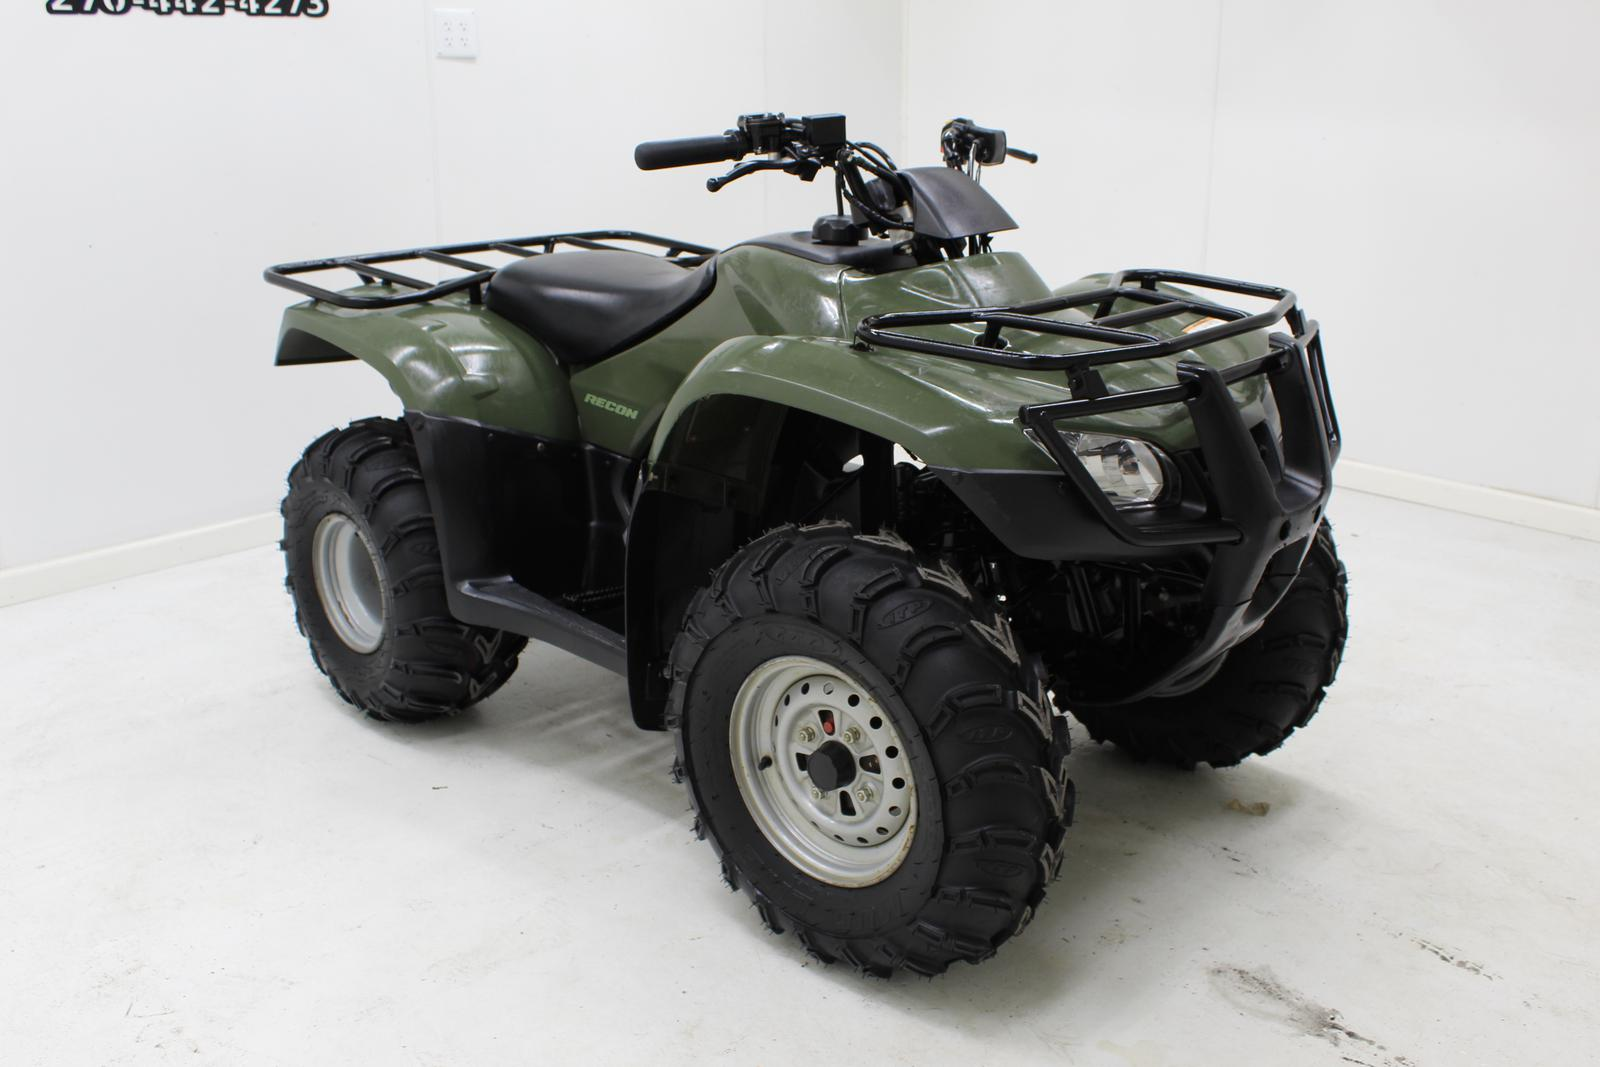 2005 Honda RECON 250 2WD TRX250TM (Honda). In Stock